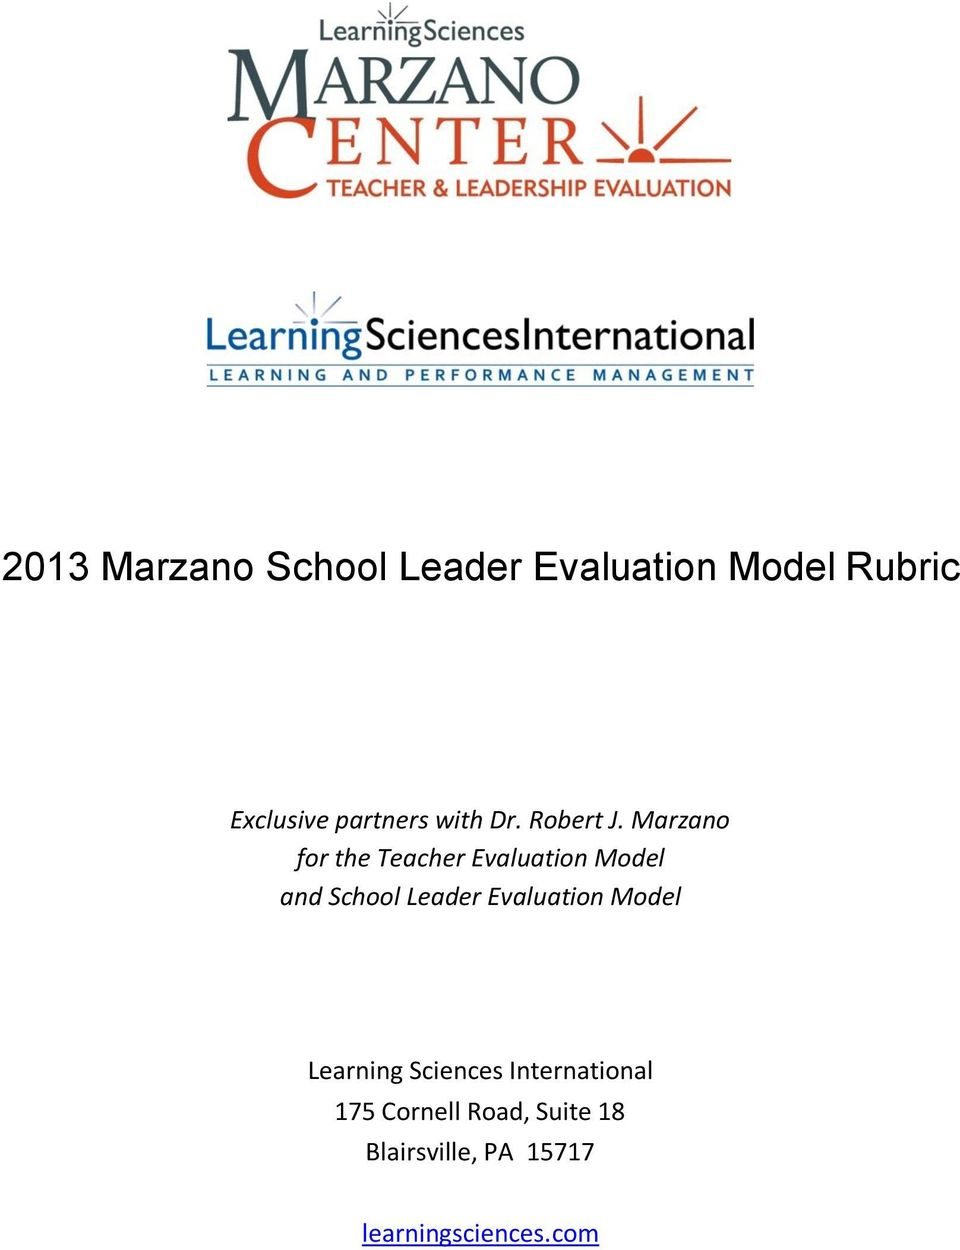 Marzano for the Teacher Evaluation Model and School Leader